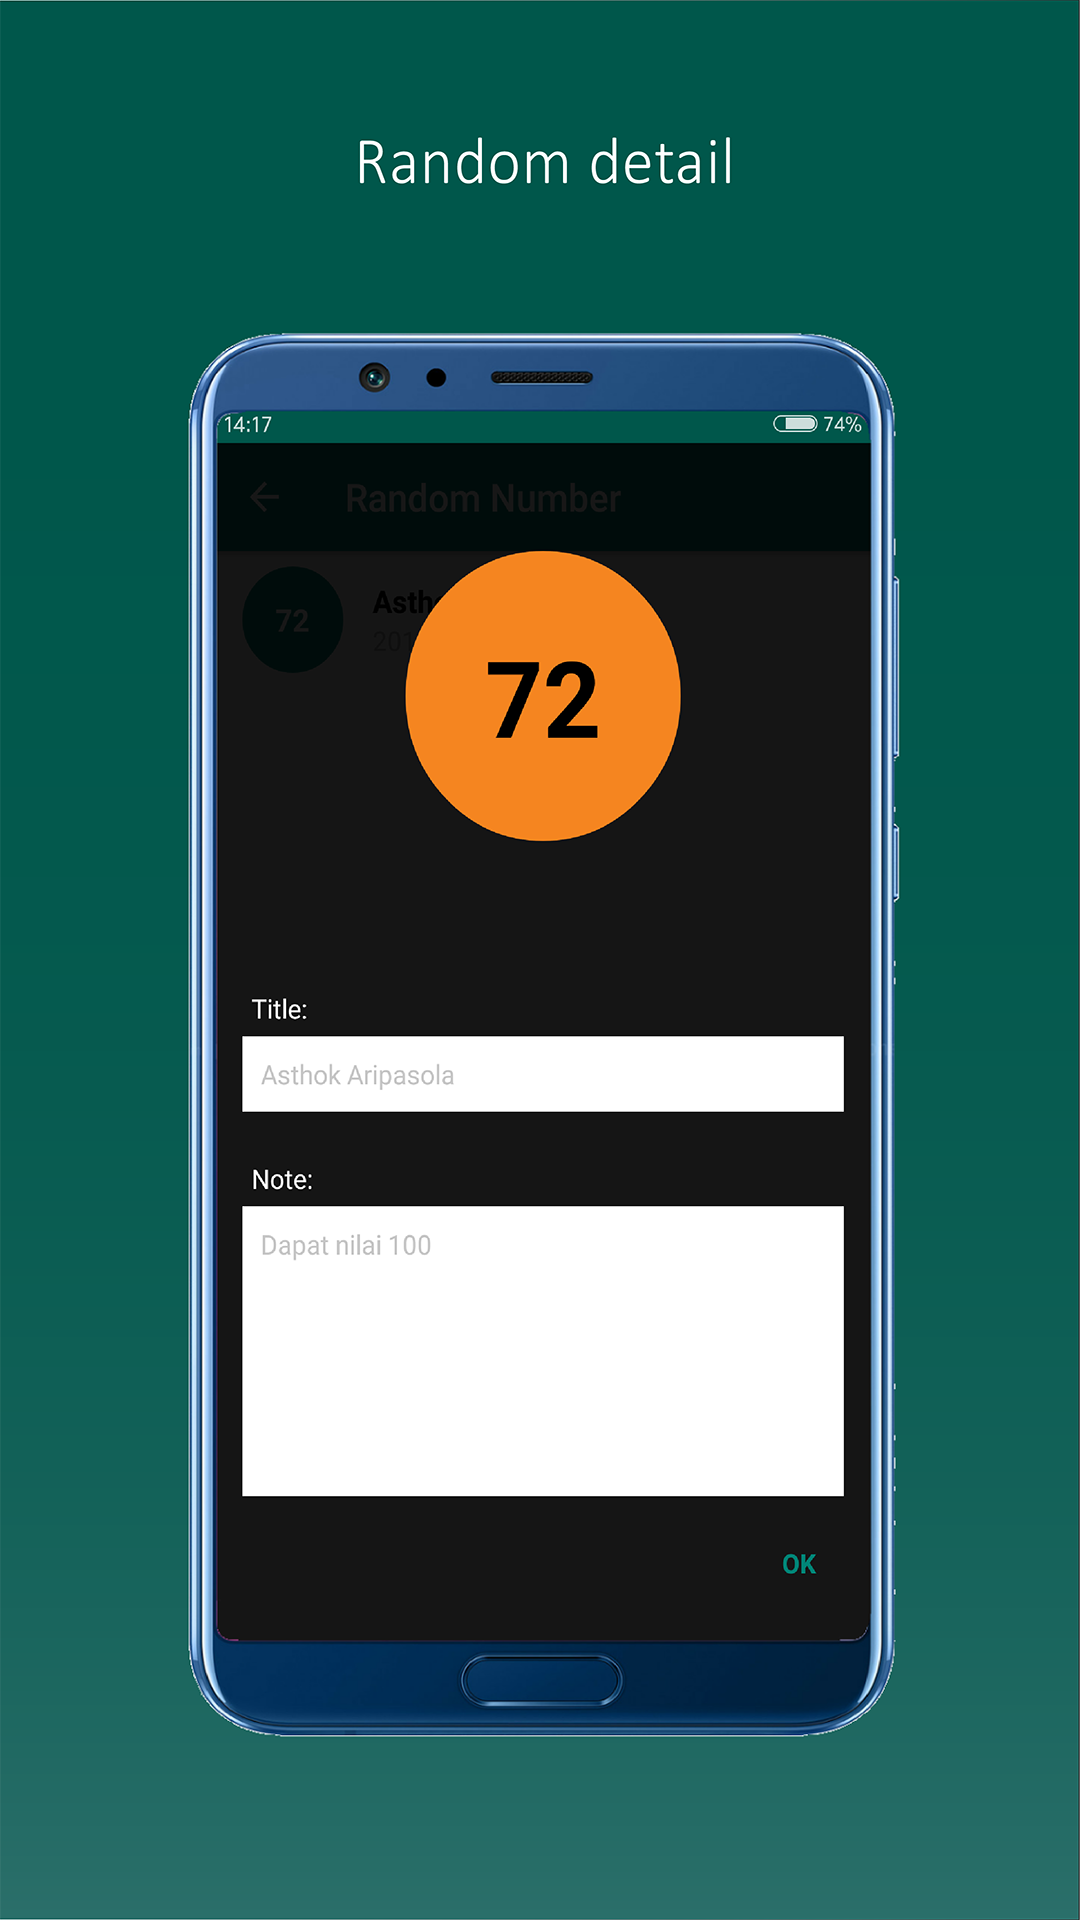 Amazon com: Random Number (Simple Generator): Appstore for Android